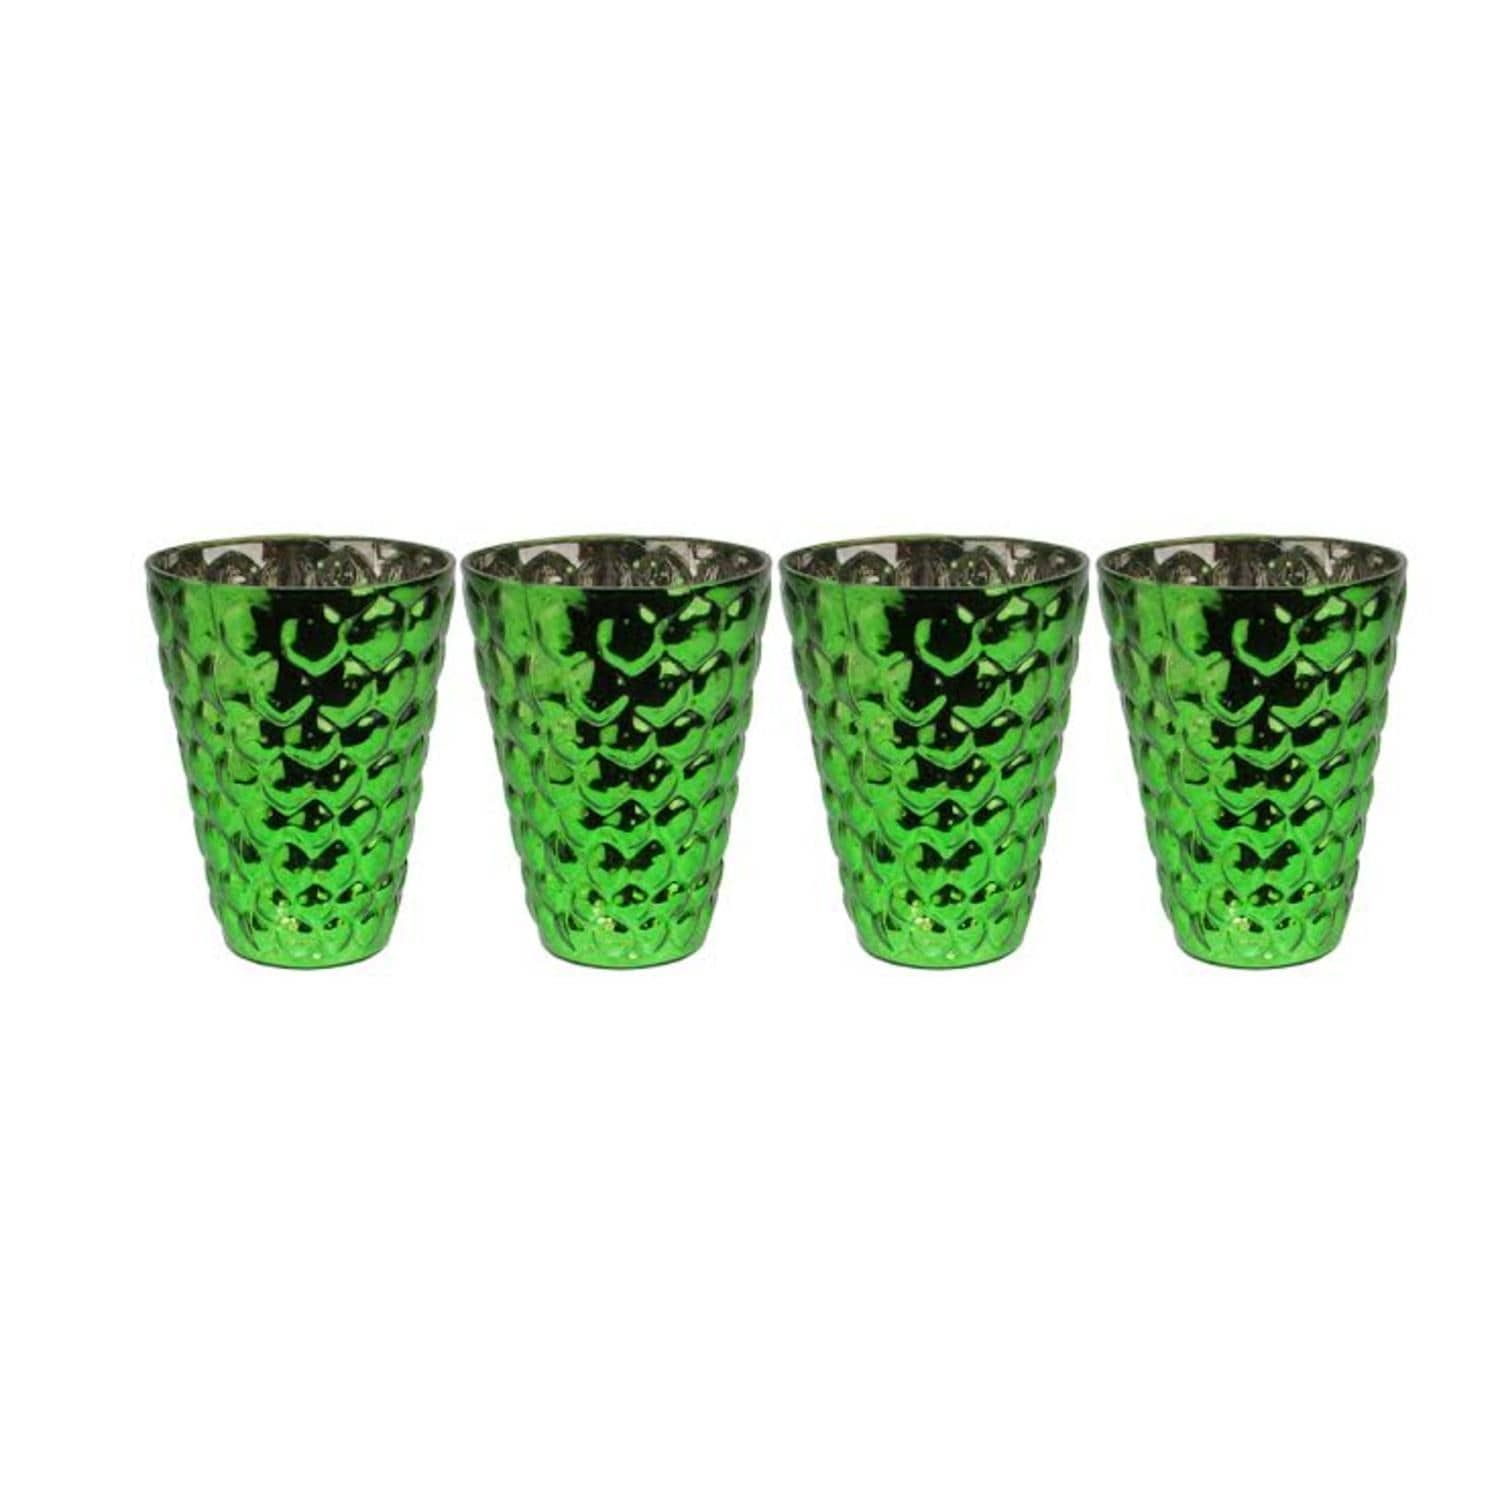 Set of green and silver textured mercury glass decorative votive